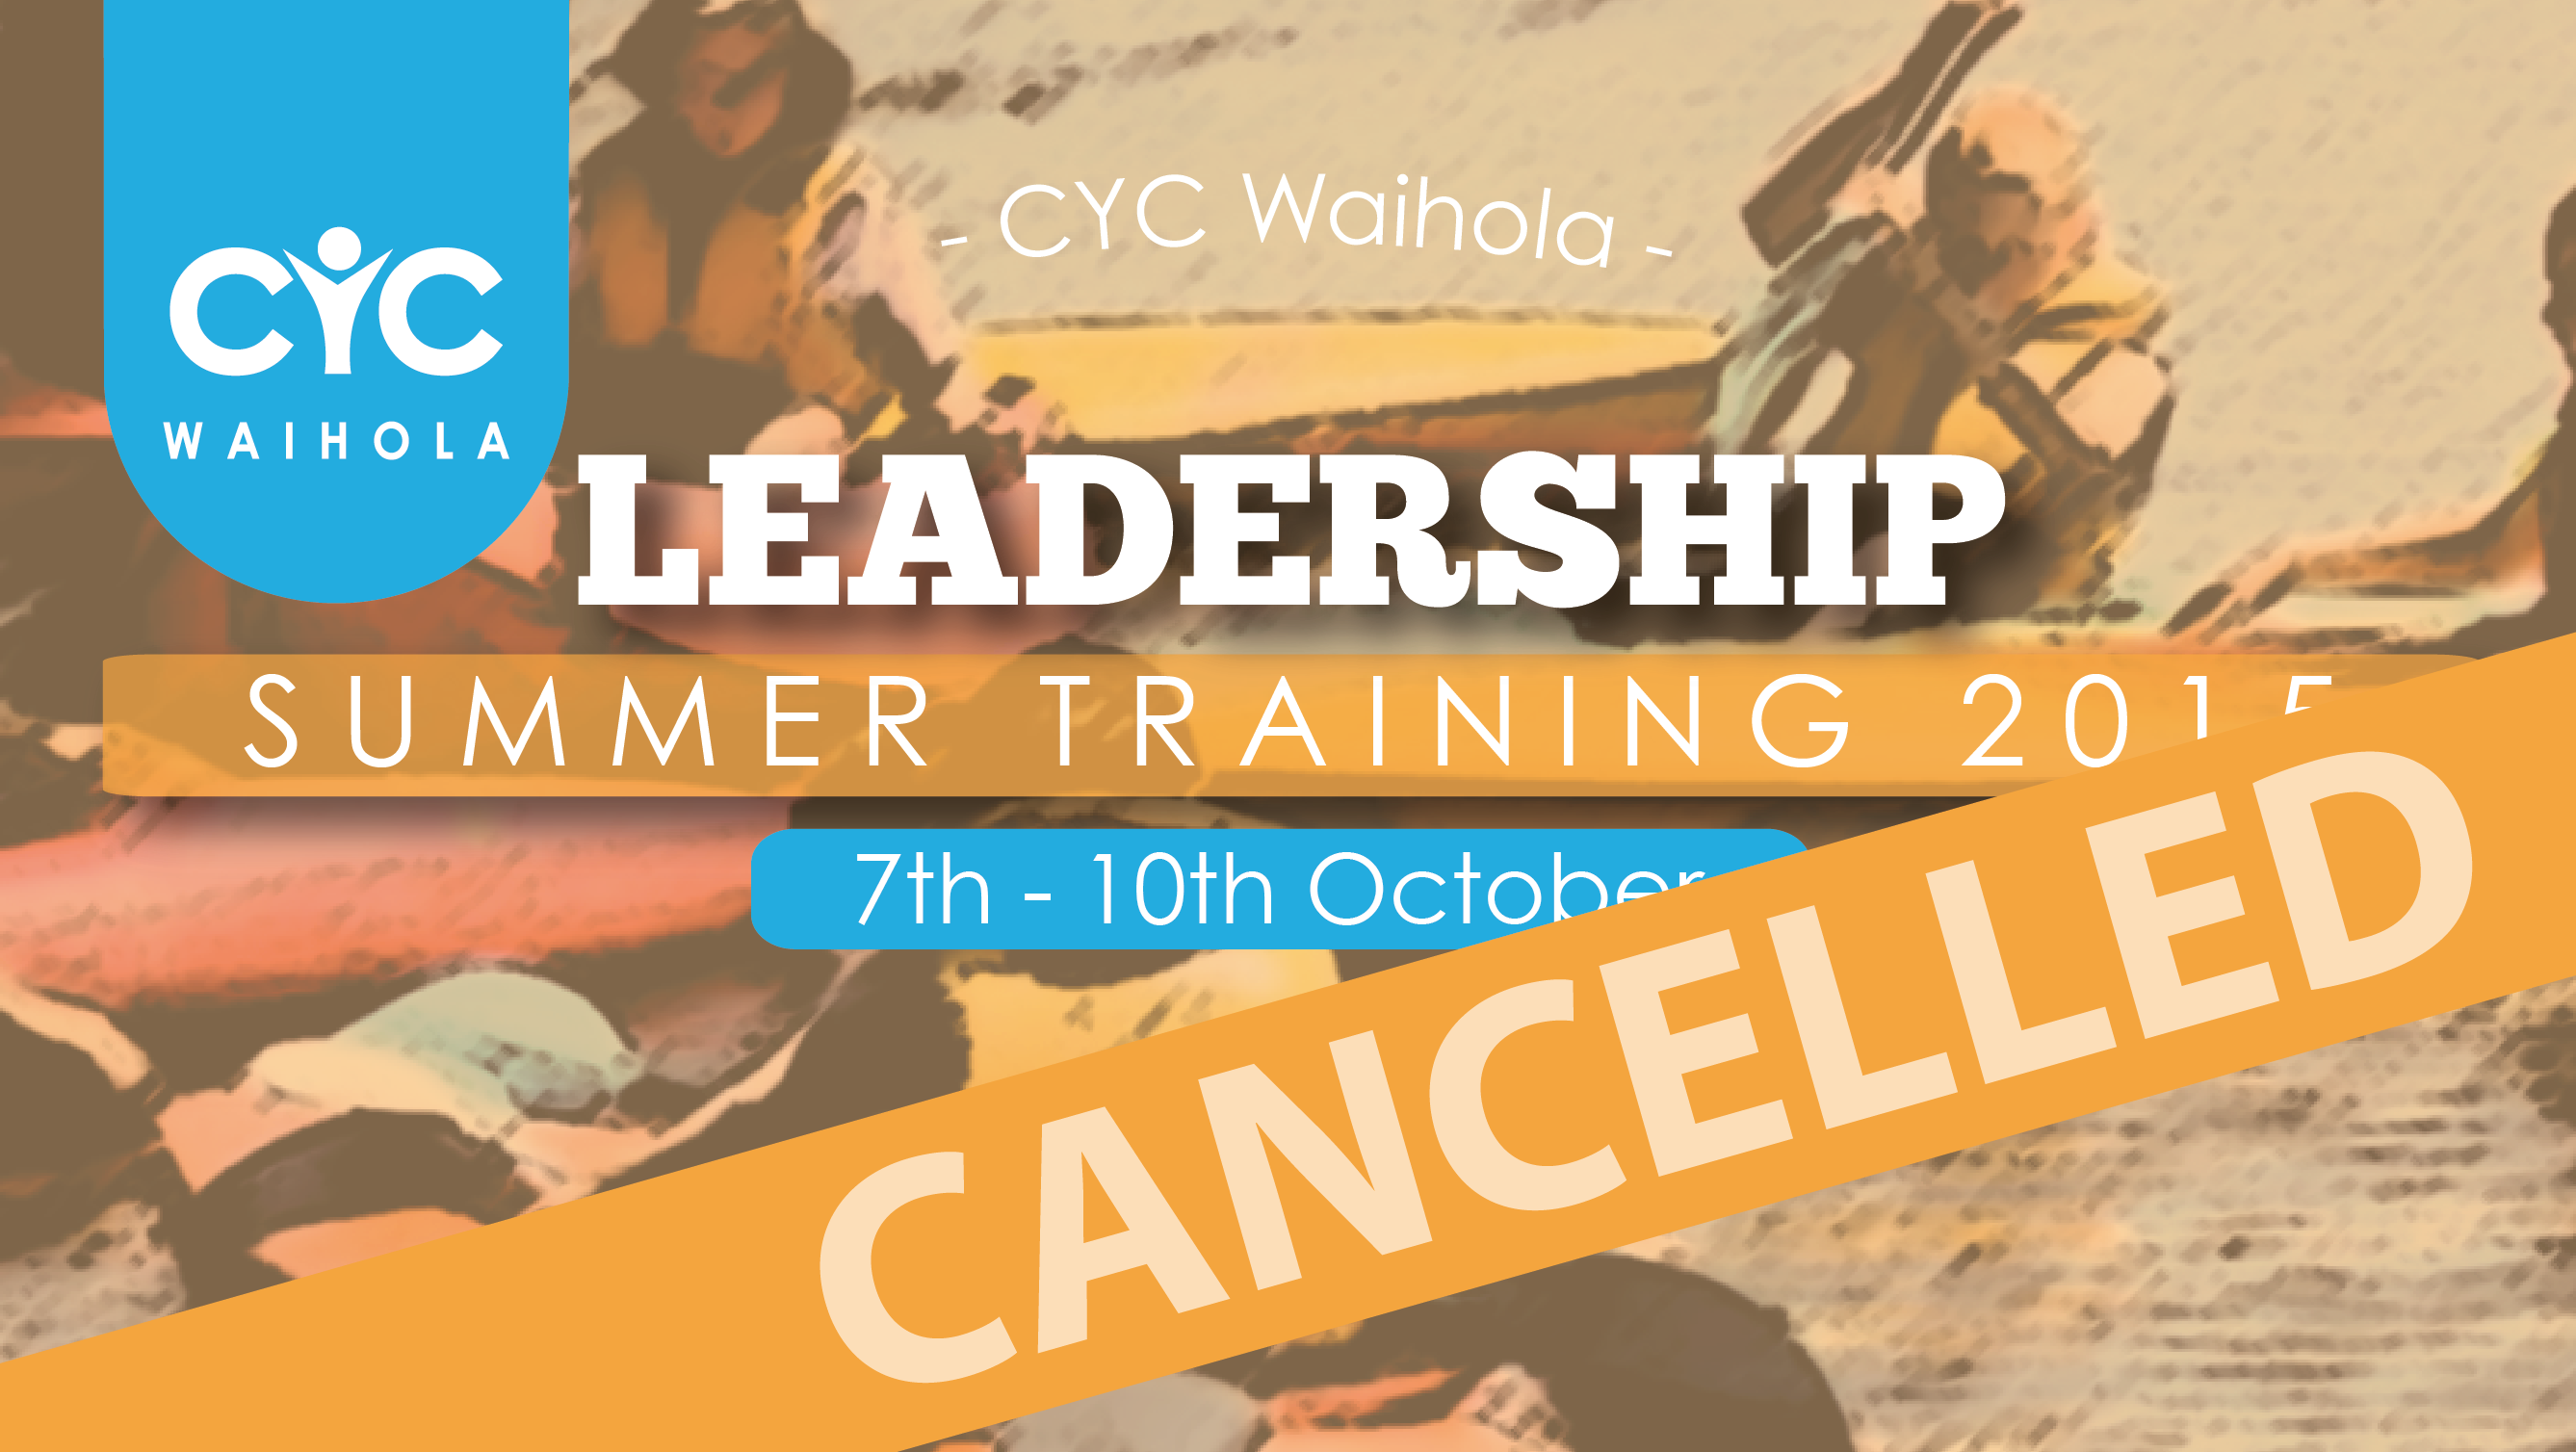 2015 Leadership Summer Training – Cancelled